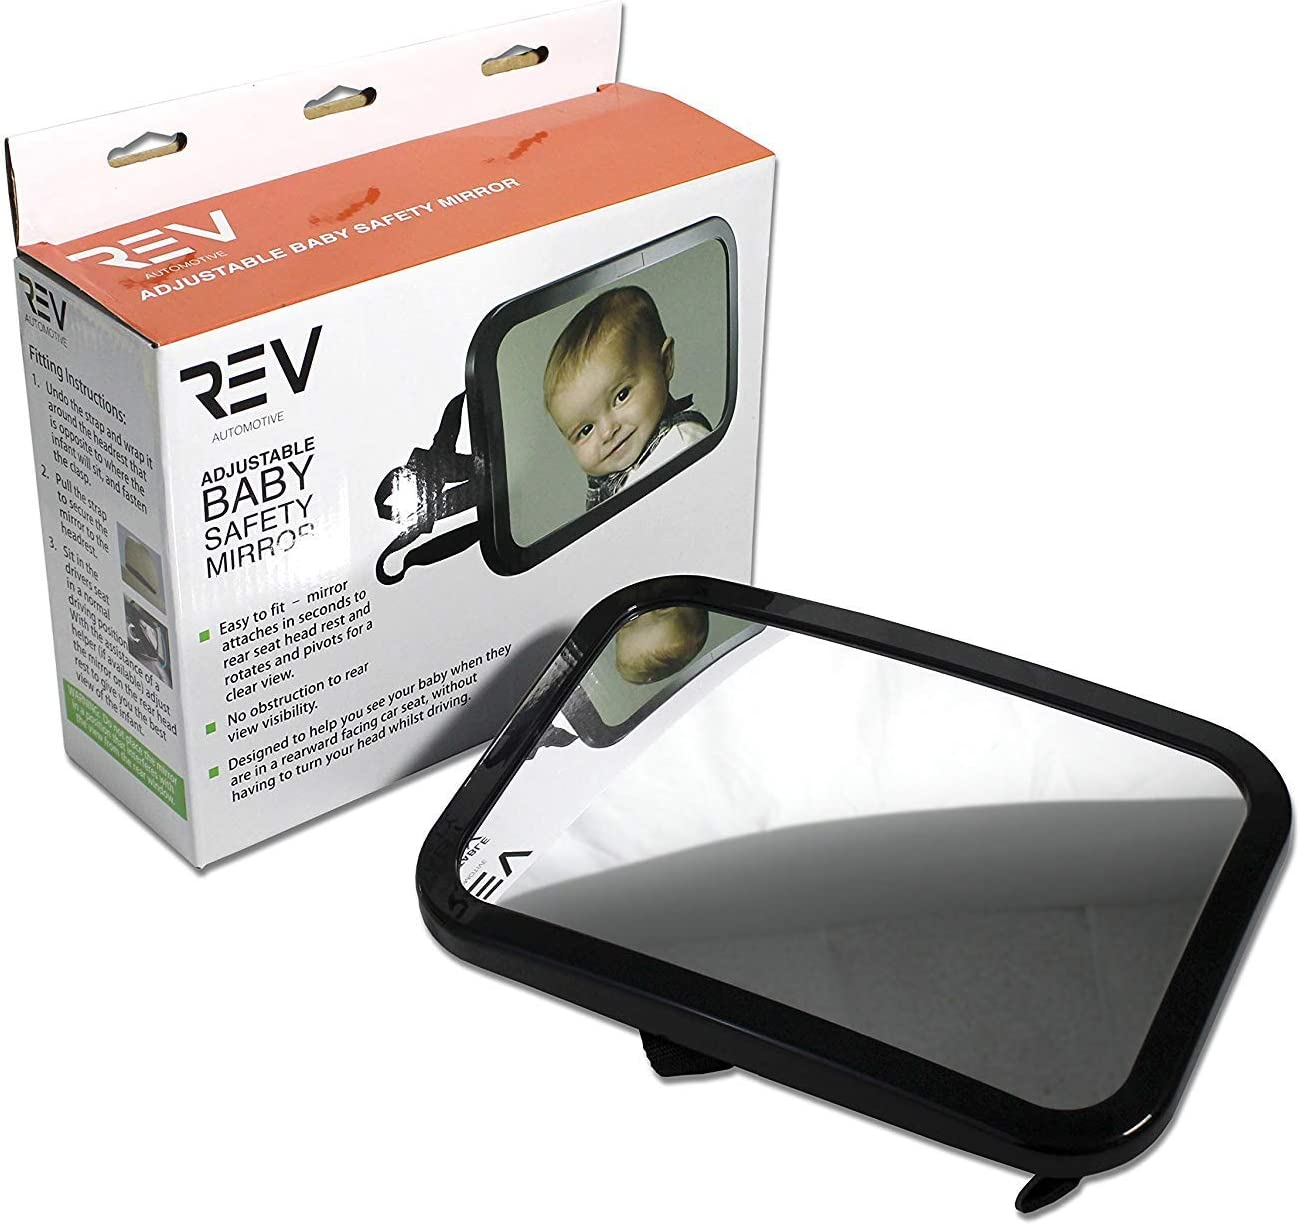 Milwaukee Mall VViViD Mail order Headrest Mounted Rear View Baby Backseat Safet Adjustable